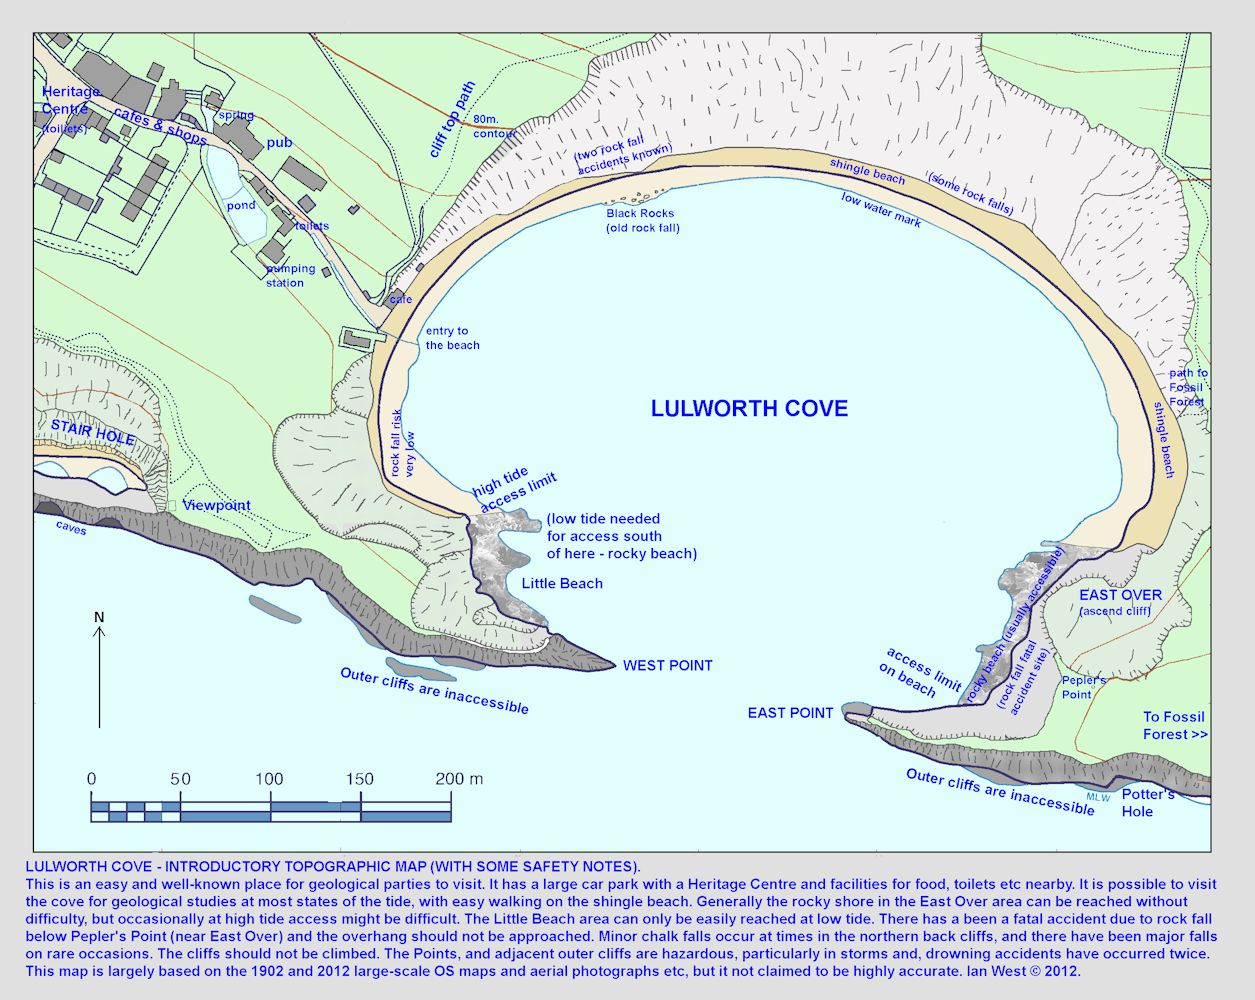 Lulworth Cove Map Lulworth Cove   Introduction, Geological Field Guide   By Dr. Ian  Lulworth Cove Map